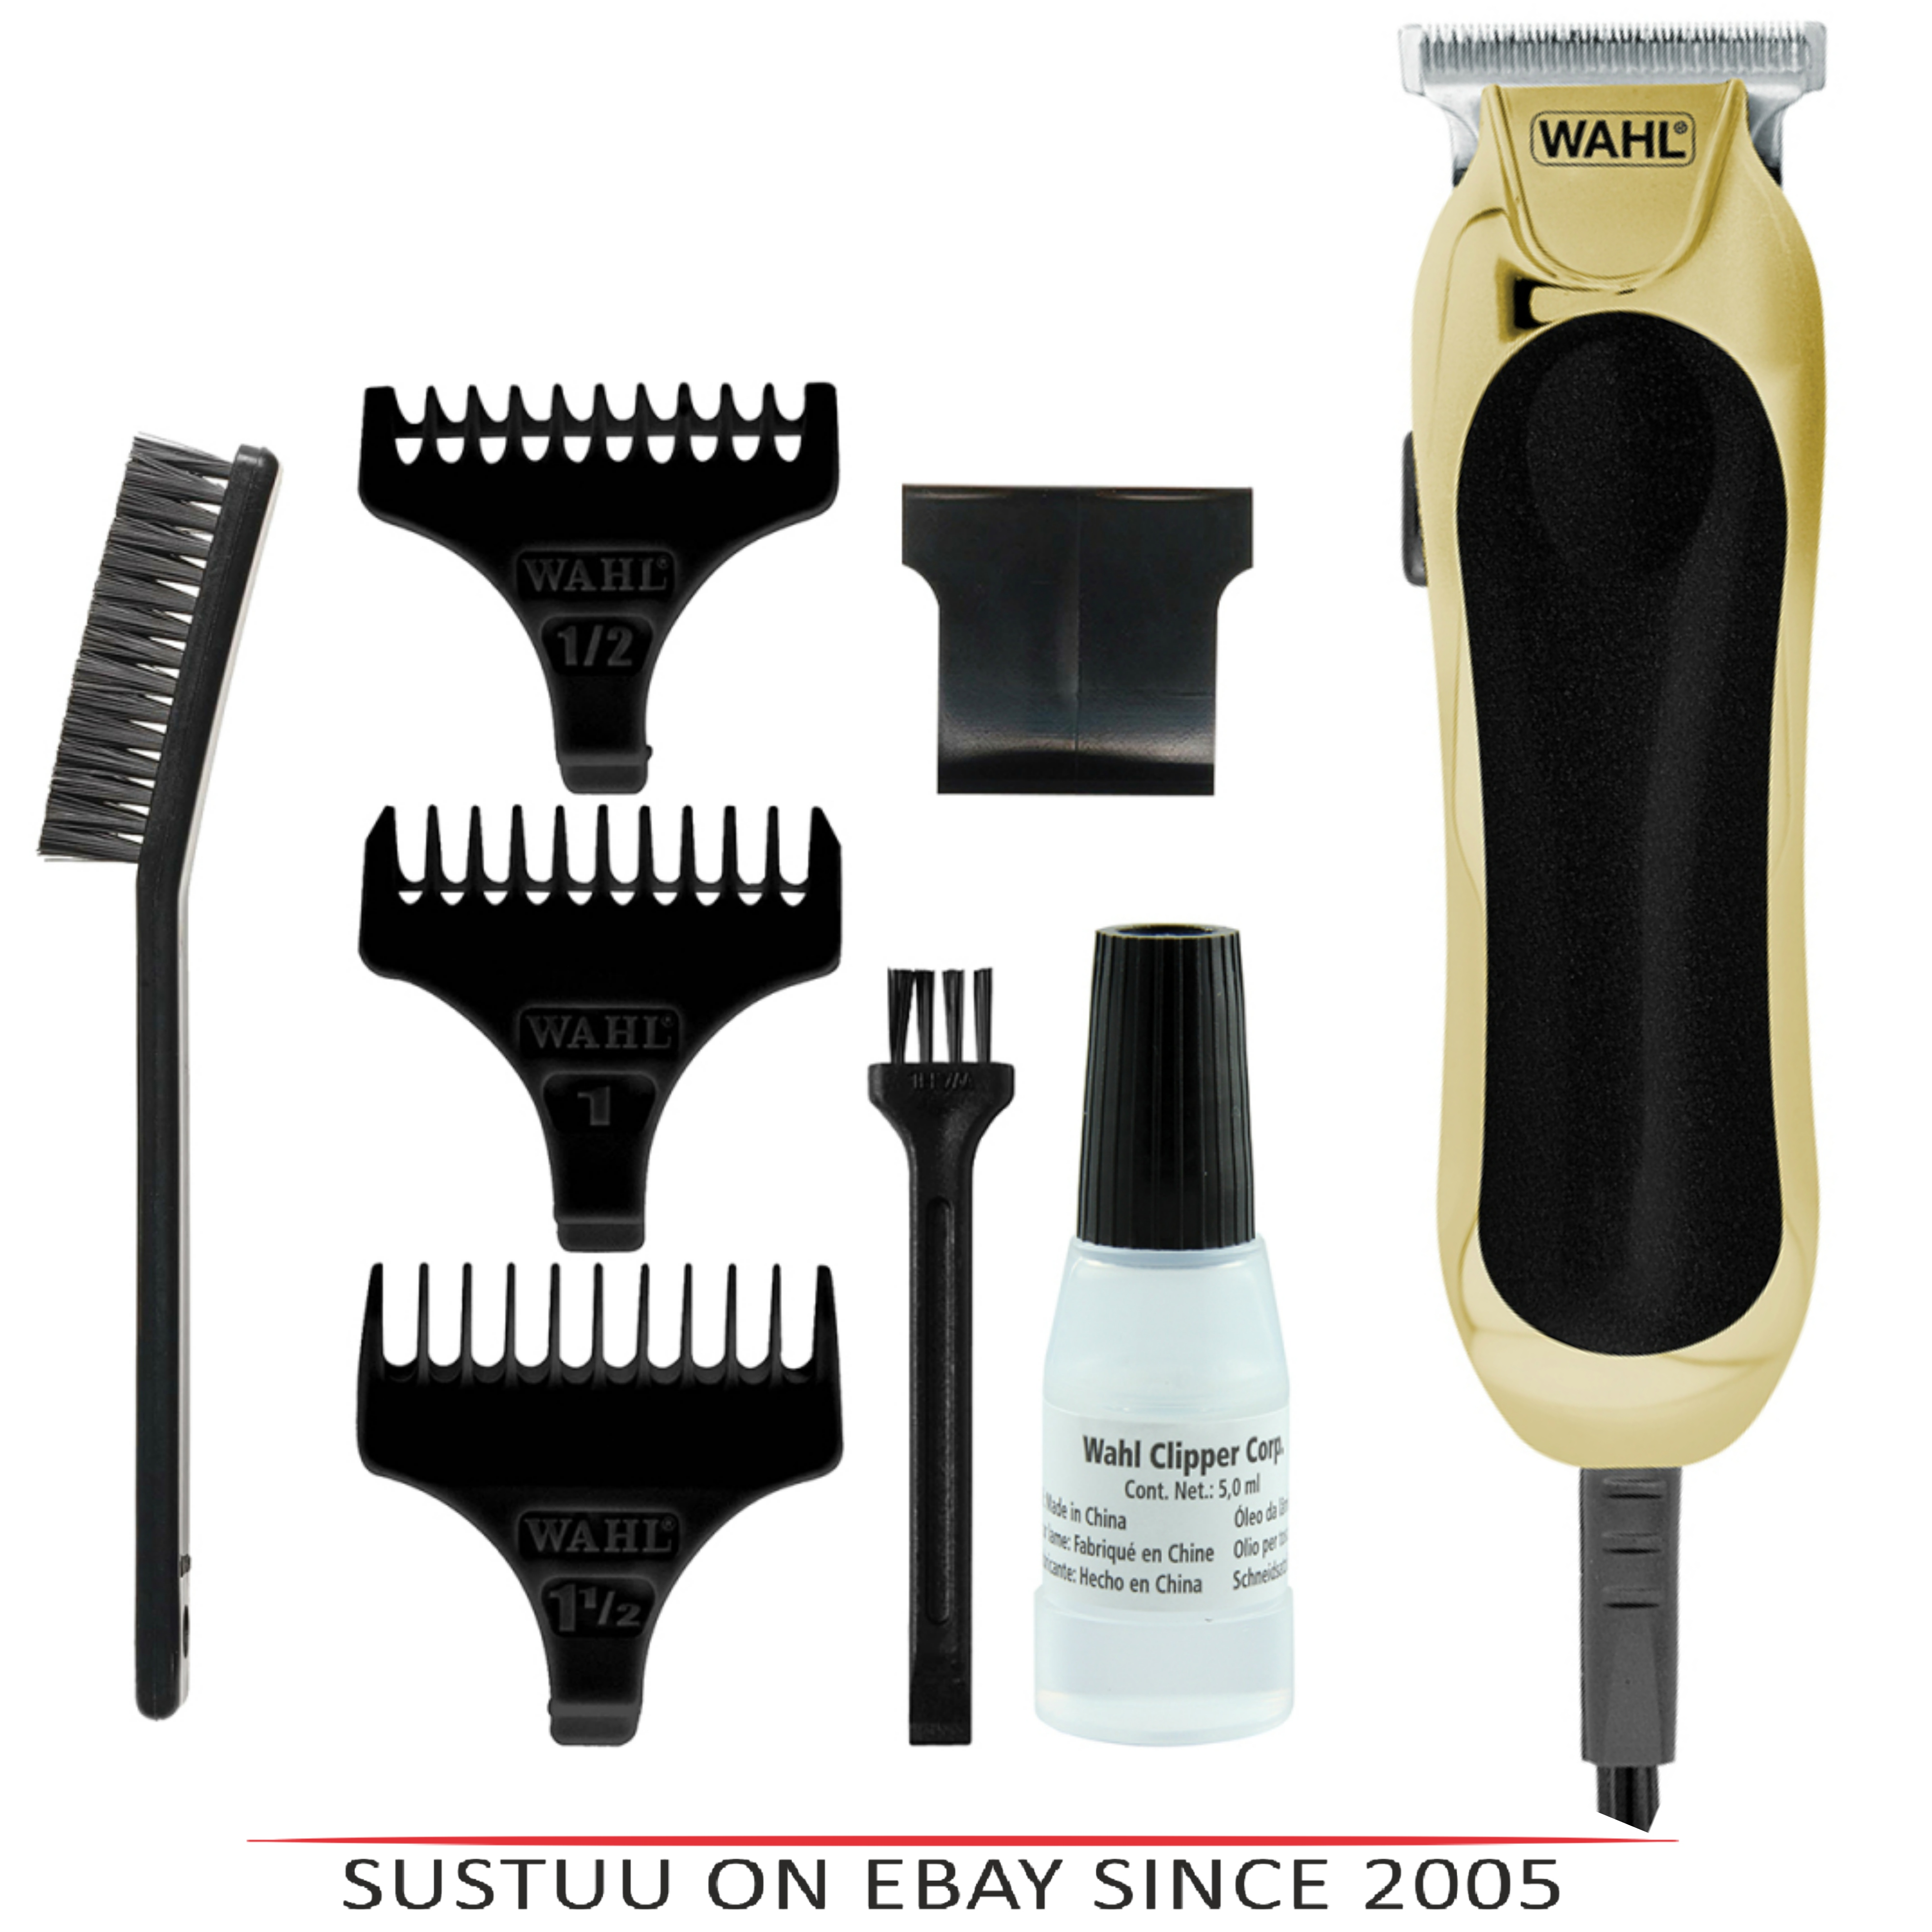 Wahl 9307-317 T-Blade Compact Mains Trimmer|Hair Clipper|Diamond Finished|Gold